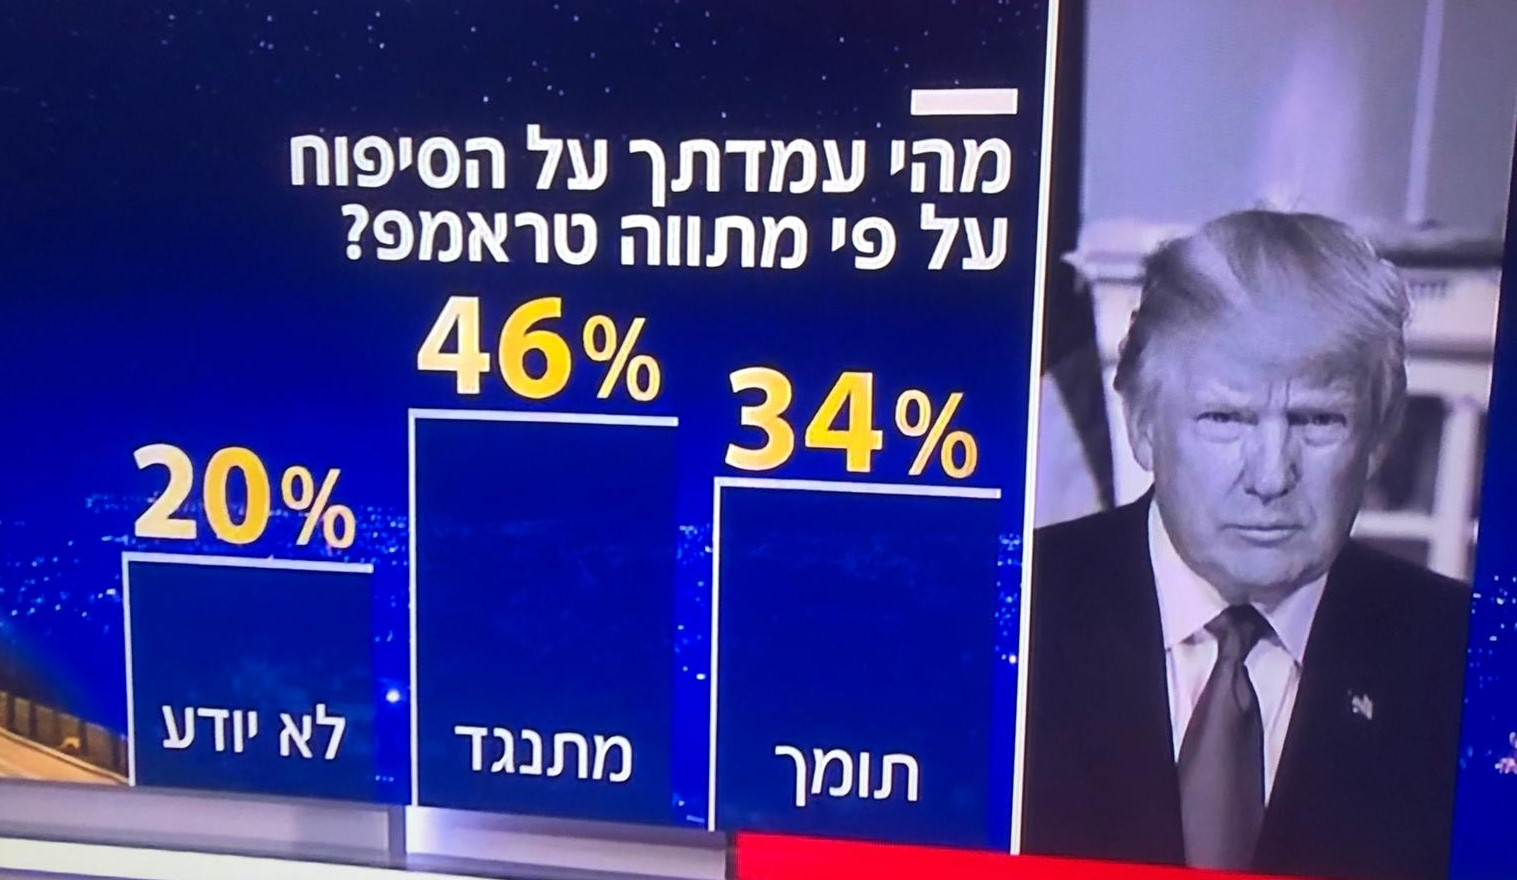 """A clear plurality of citizens of Israel oppose Netanyahu's plan for annexation of territories in the West Bank, supported the Trump administration. The poll carried by Channel 12 News and broadcast last Monday, June 8 asked: What is you position on annexation along the lines of the Trump proposal?"""" 46% were against, 34% were in favor, and 20% did not know."""